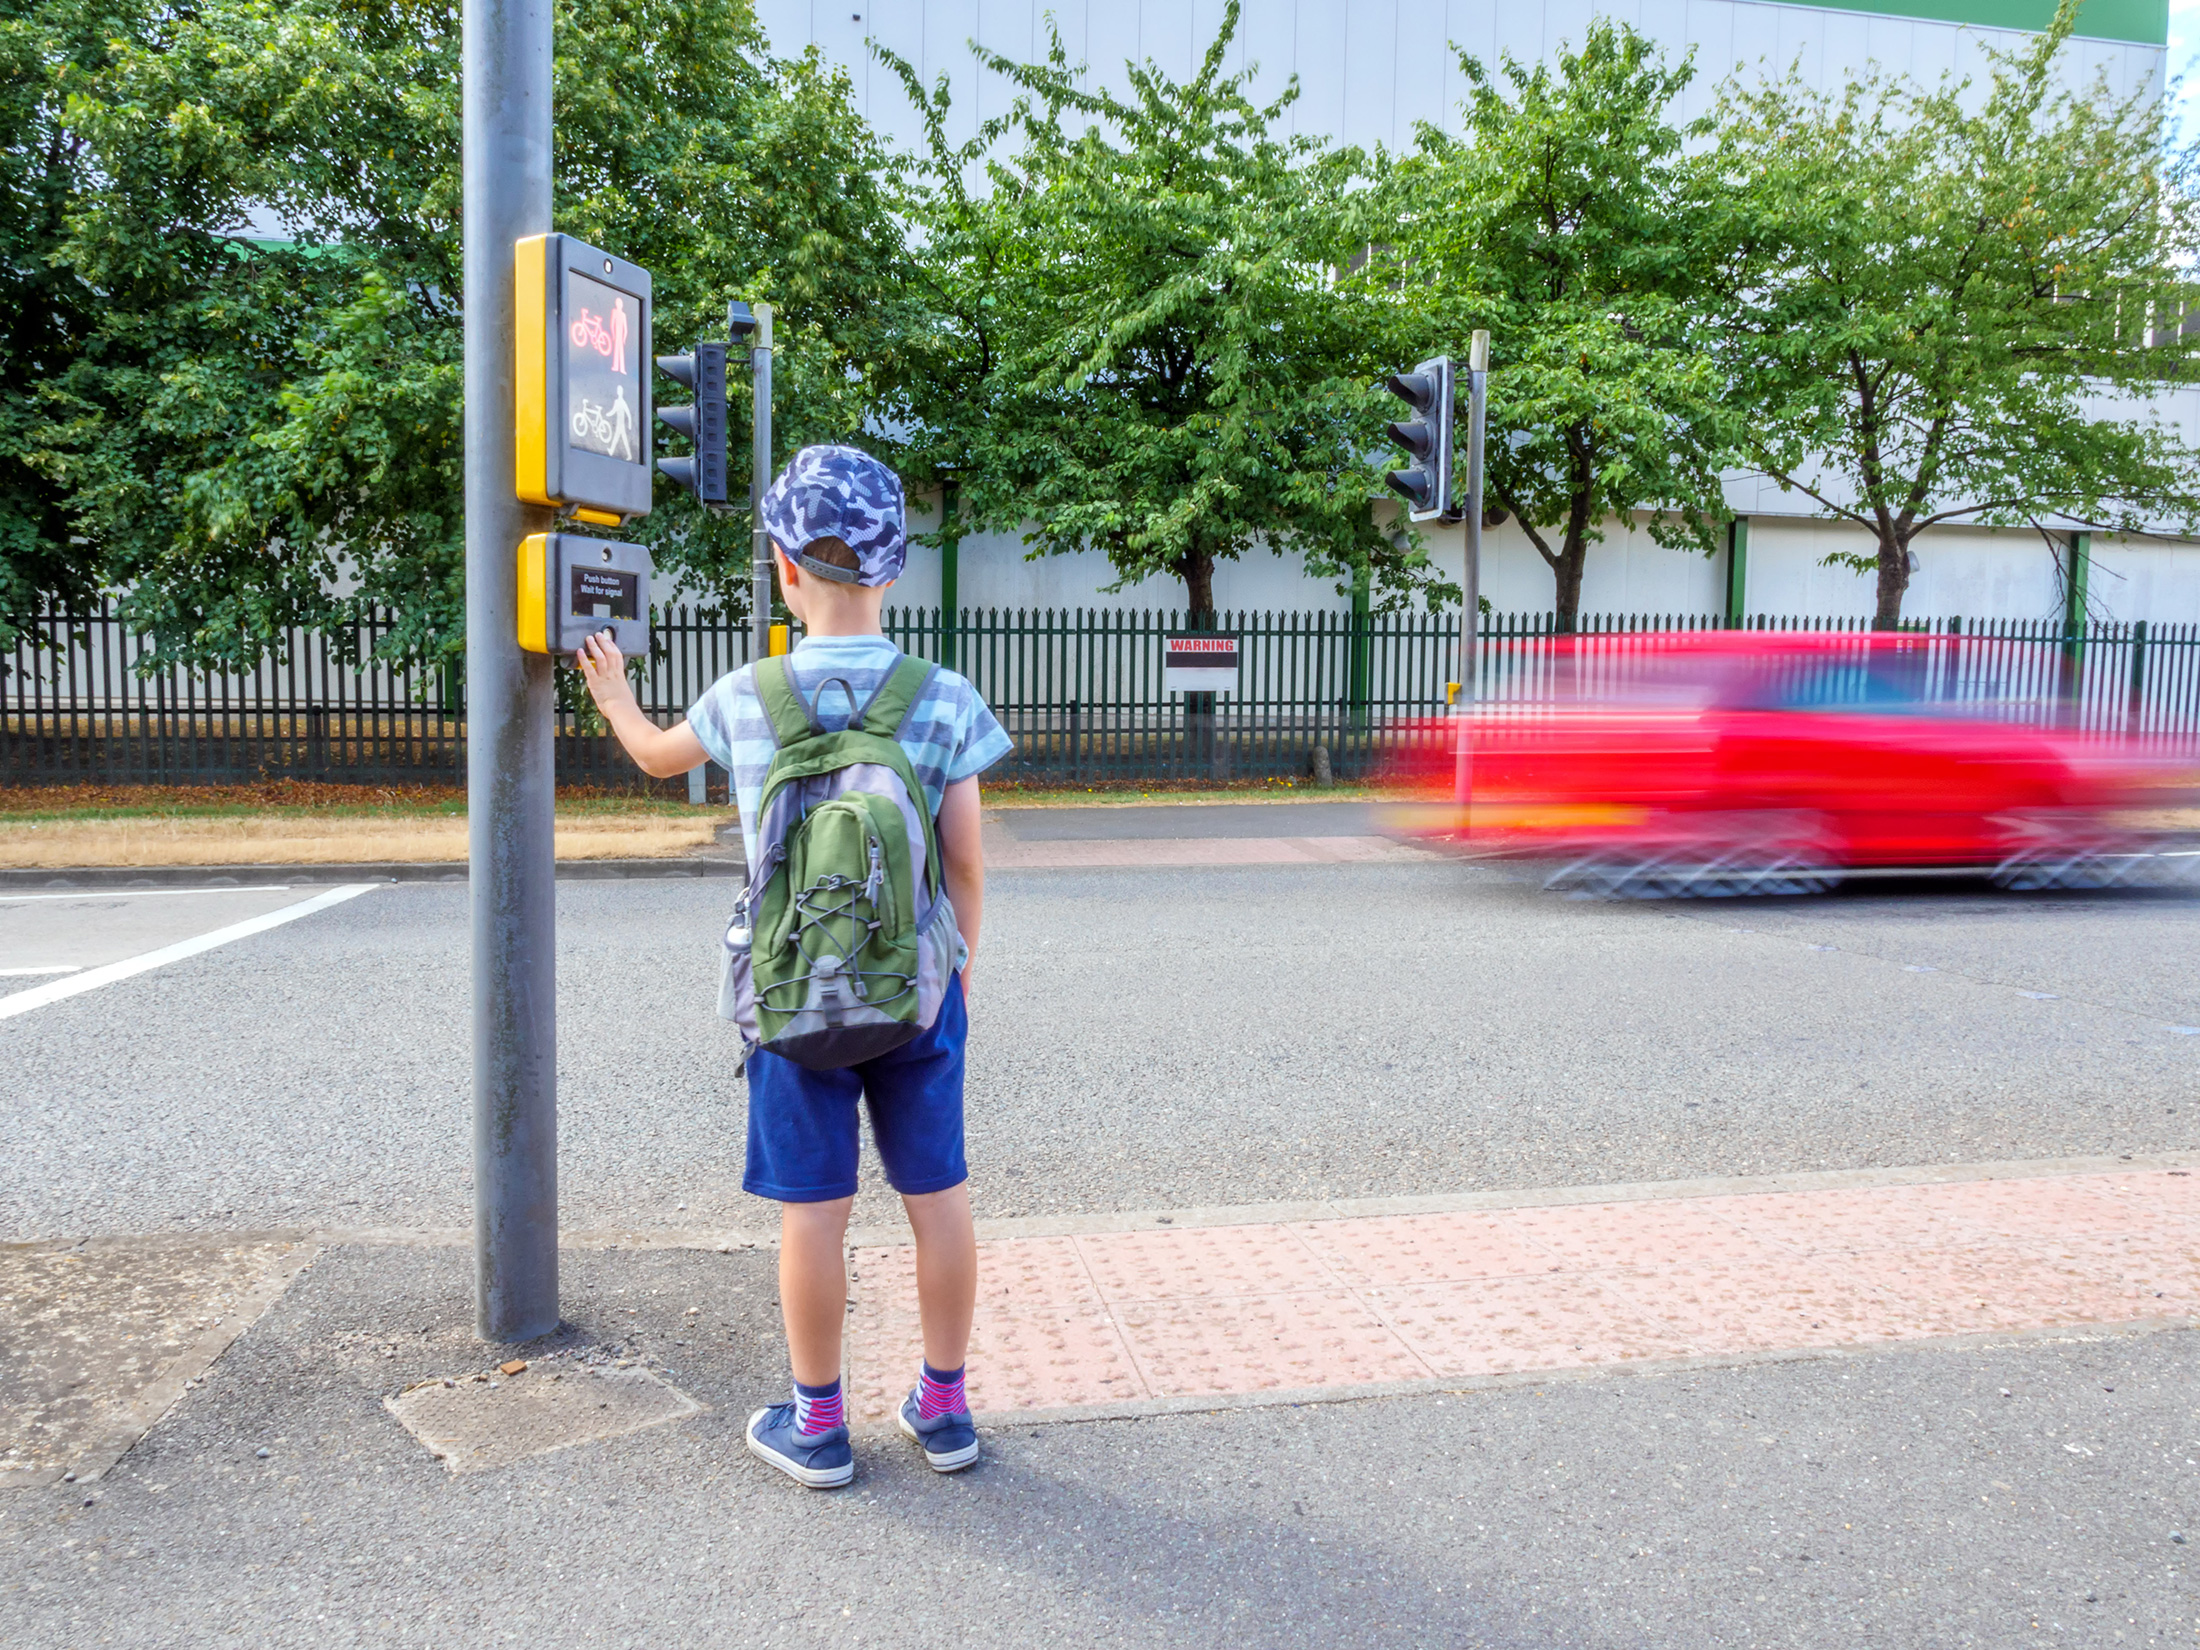 Young child waiting at a pedestrian crossing with timelapse of a moving red car in the background